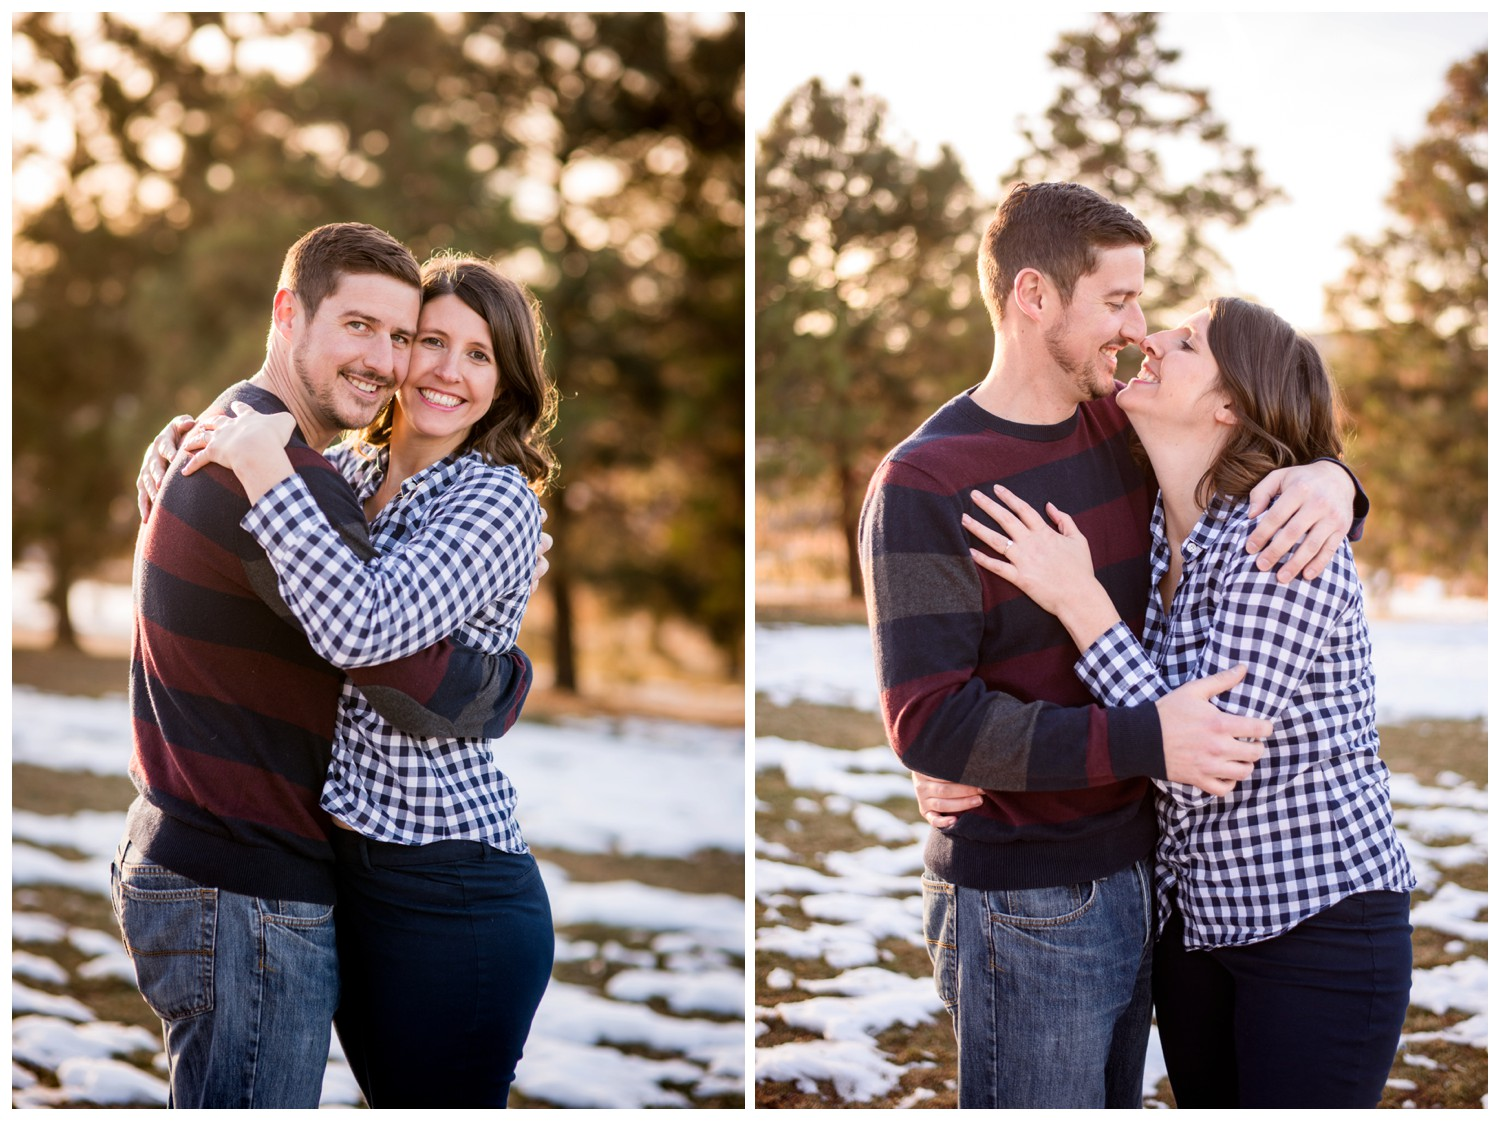 winter engagement photos in front of Pine trees in Denver